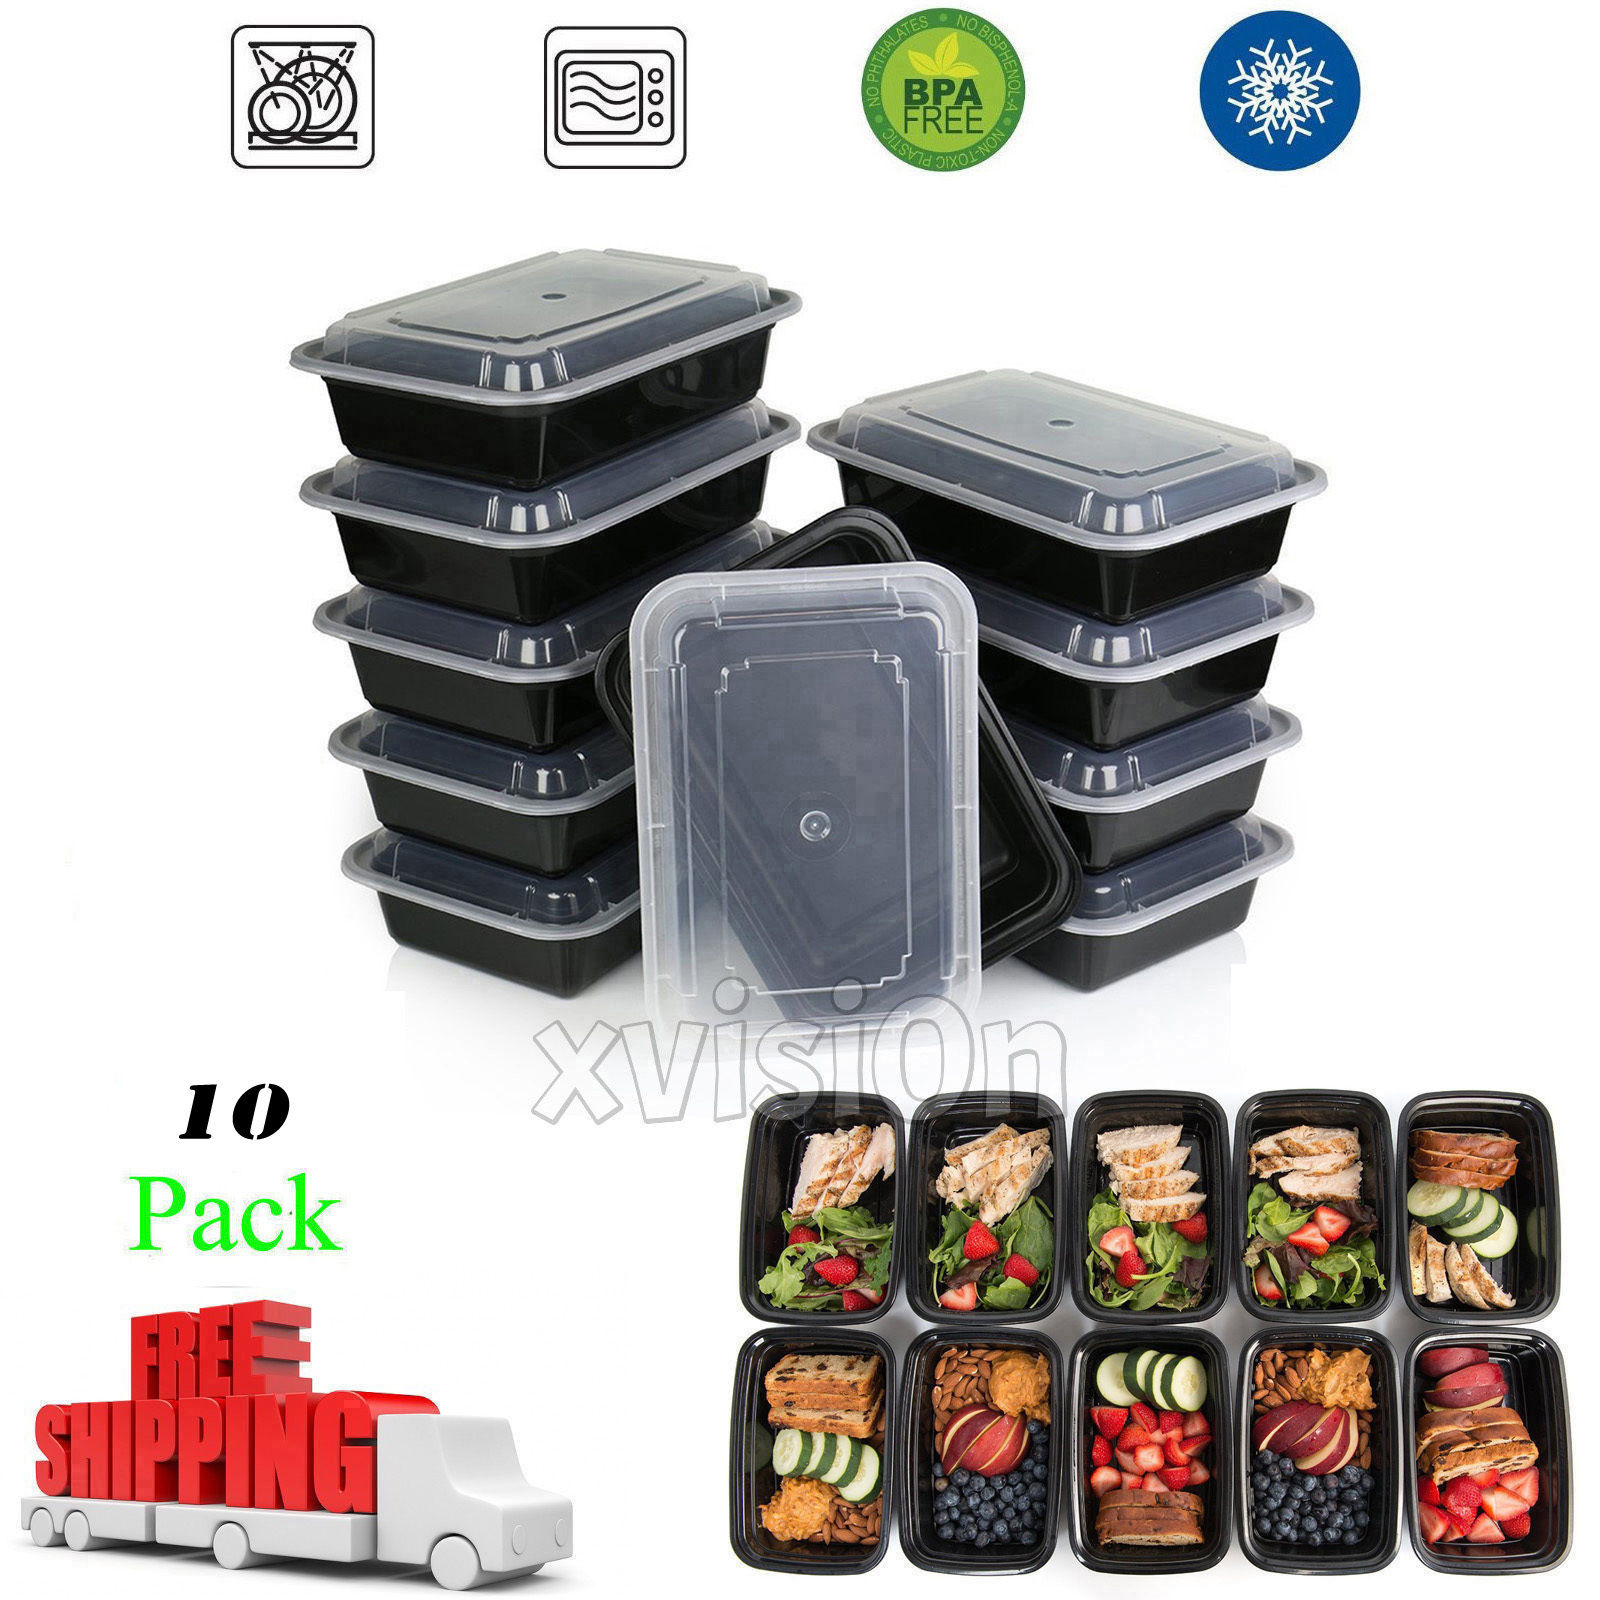 10 Meal Prep Containers Food Storage Reusable Microwavable Plastic 1 Compartment 1